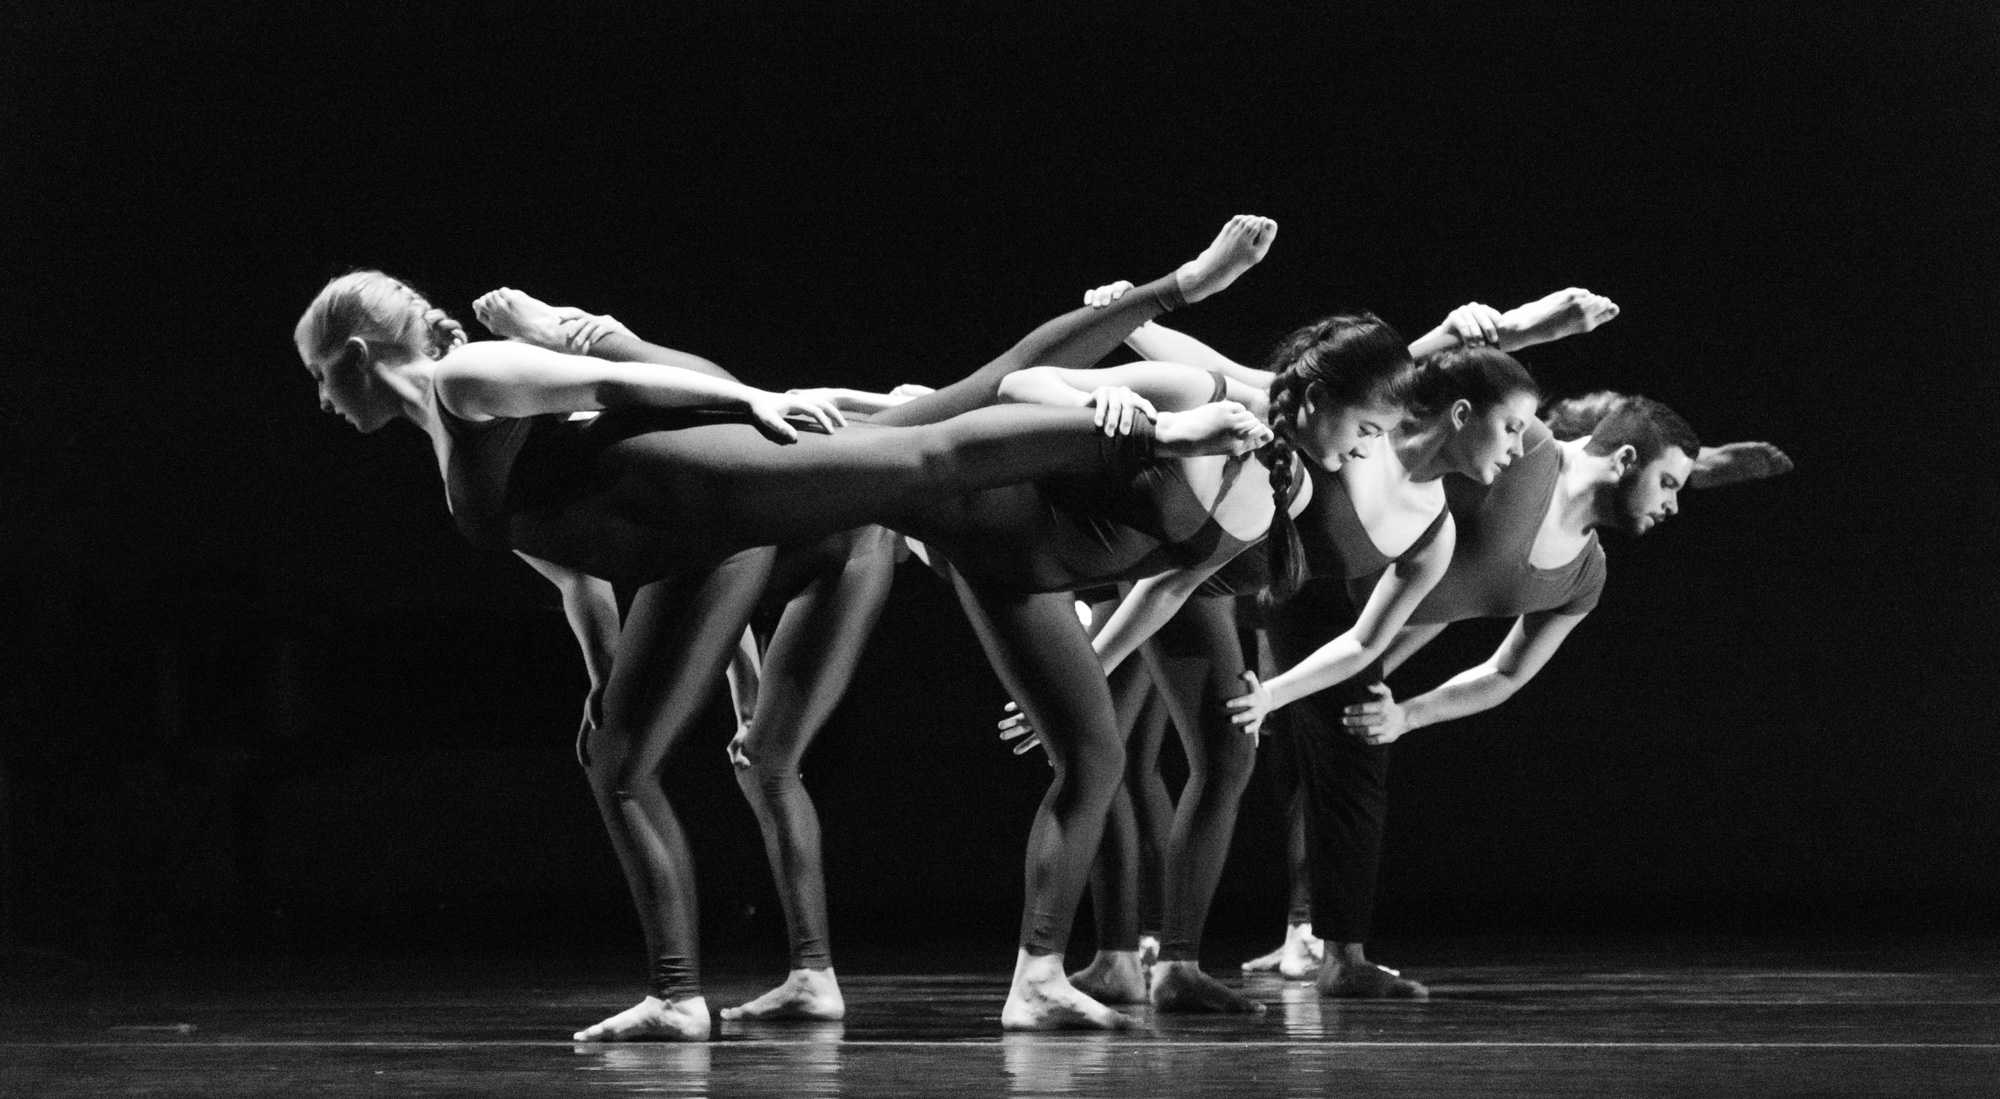 Dancers in an original piece titled Elegy by choreographer Regina Gulick, senior lecturer in the Department of Theatre and Dance. Photo by Dallas Linger.